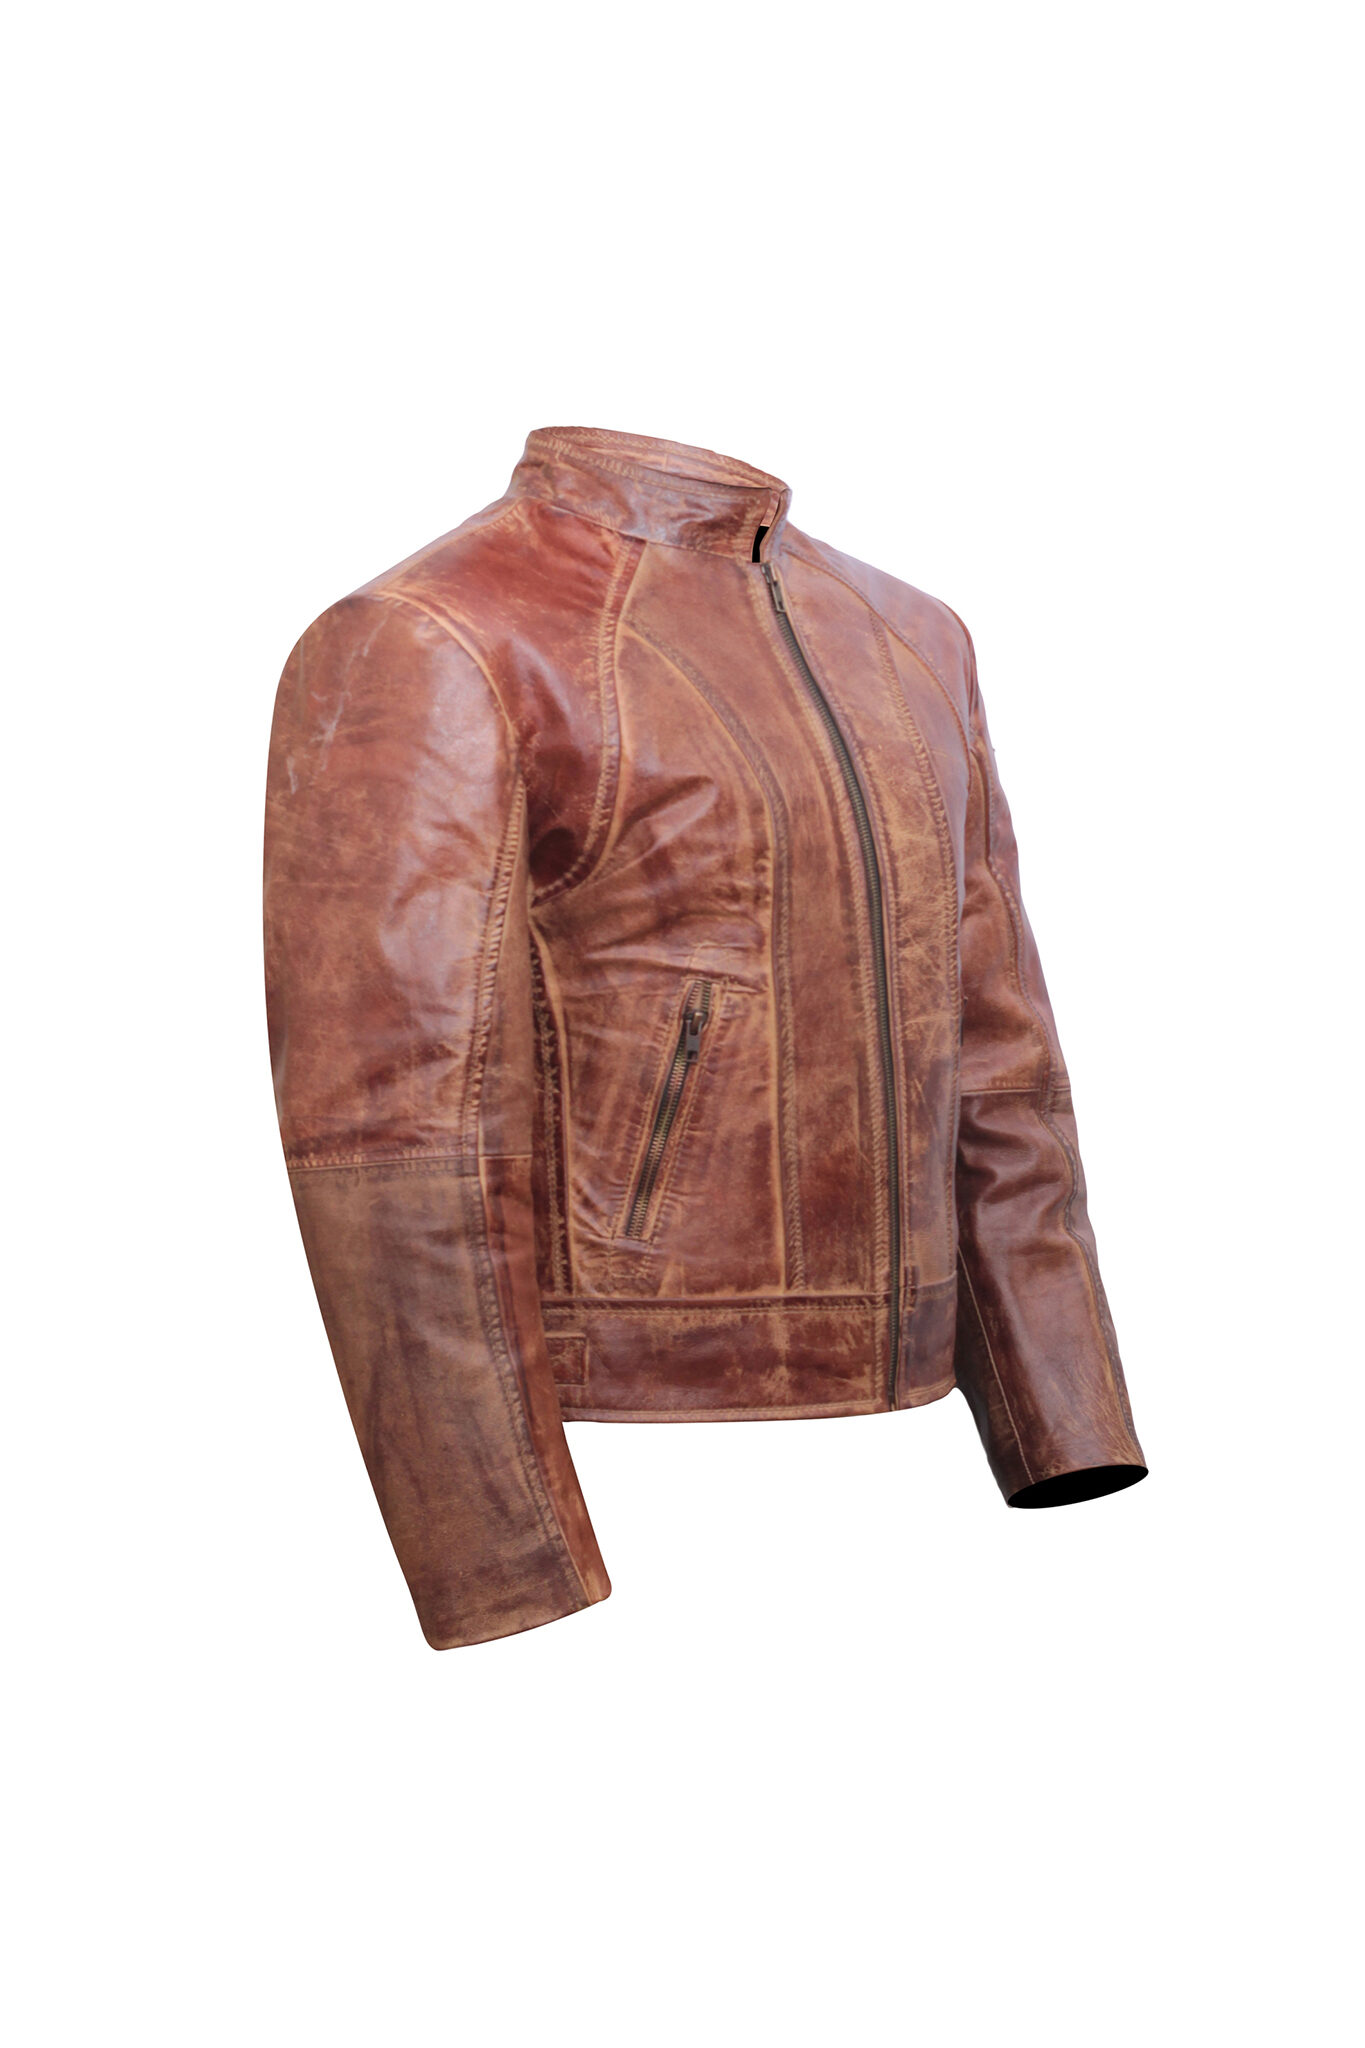 Brown Distressed Leather Jacket Women – Moto Jacket Women – Leather Jackets for Women-3